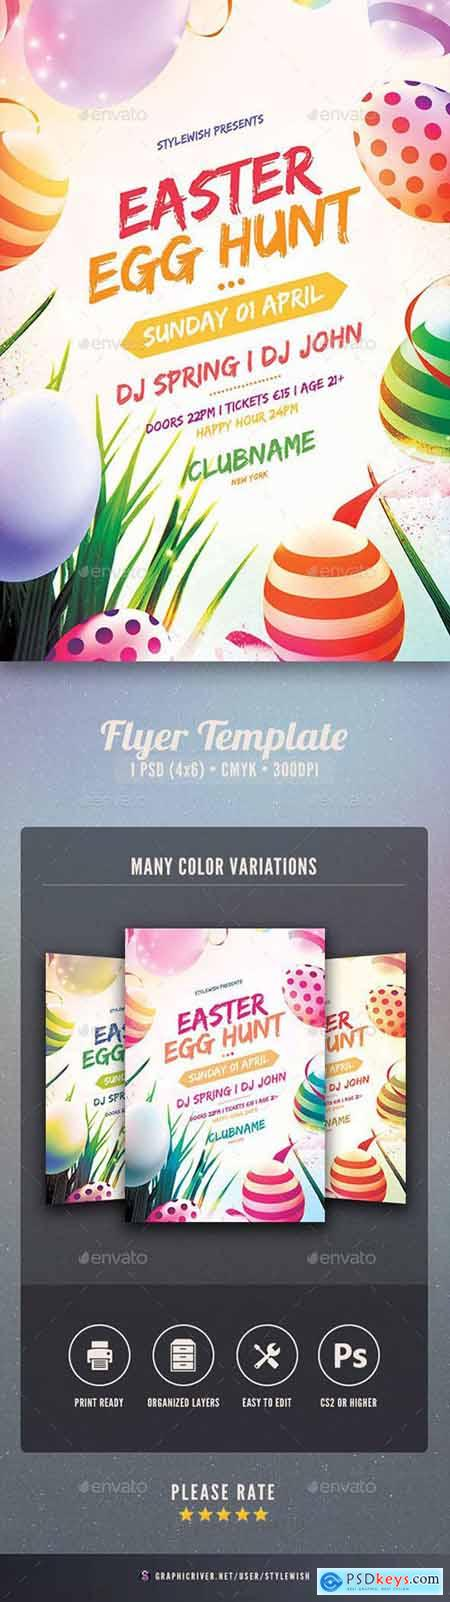 Graphicriver Easter Egg Hunt Flyer